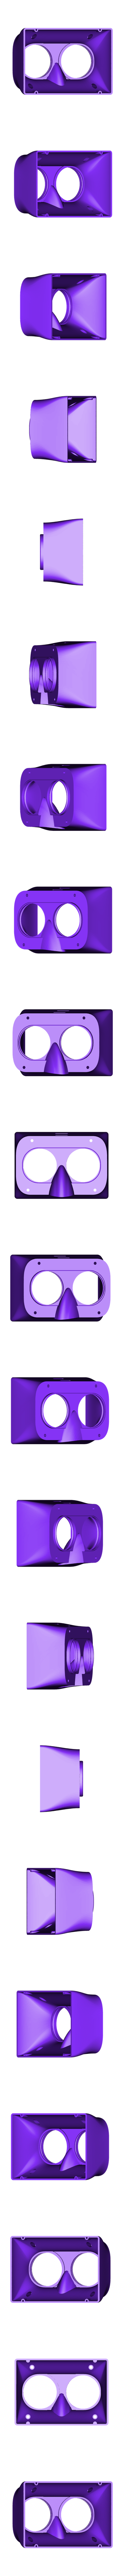 "Lensholder01.STL Download free STL file VR goggles for 5.6"" LCD • 3D print design, tahustvedt"